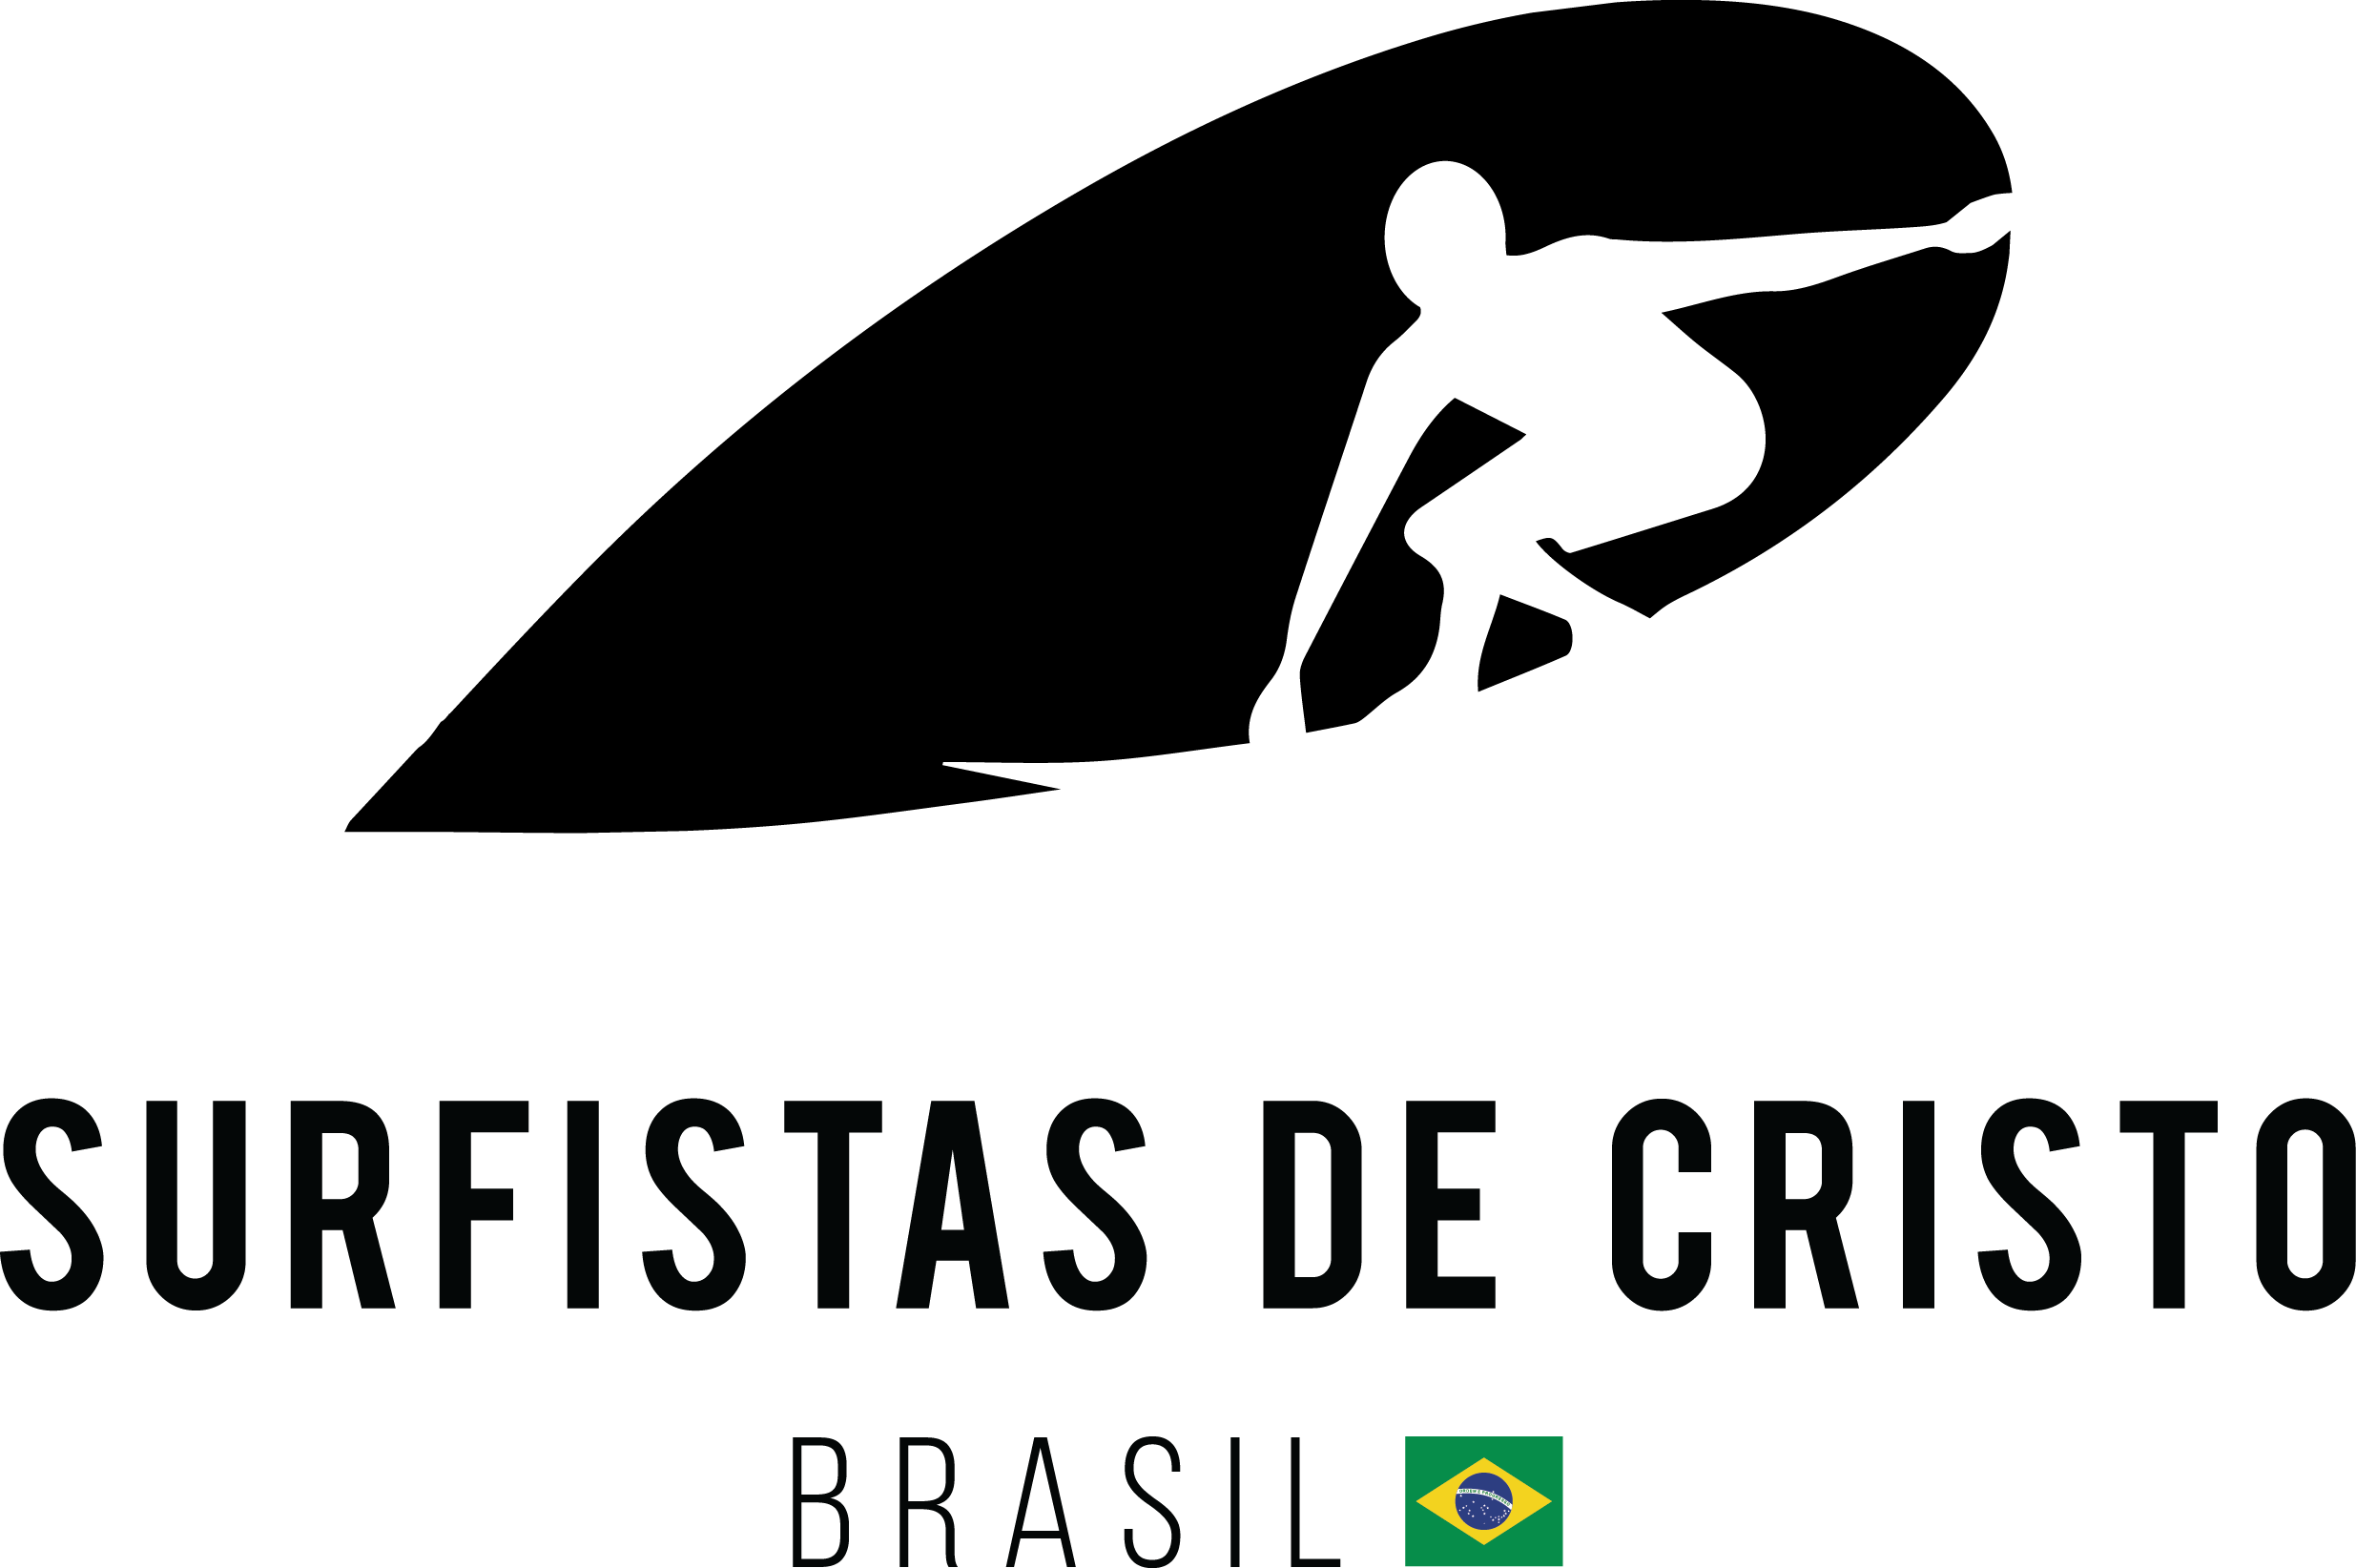 Christian-Surfers-Brazil-Logo.png